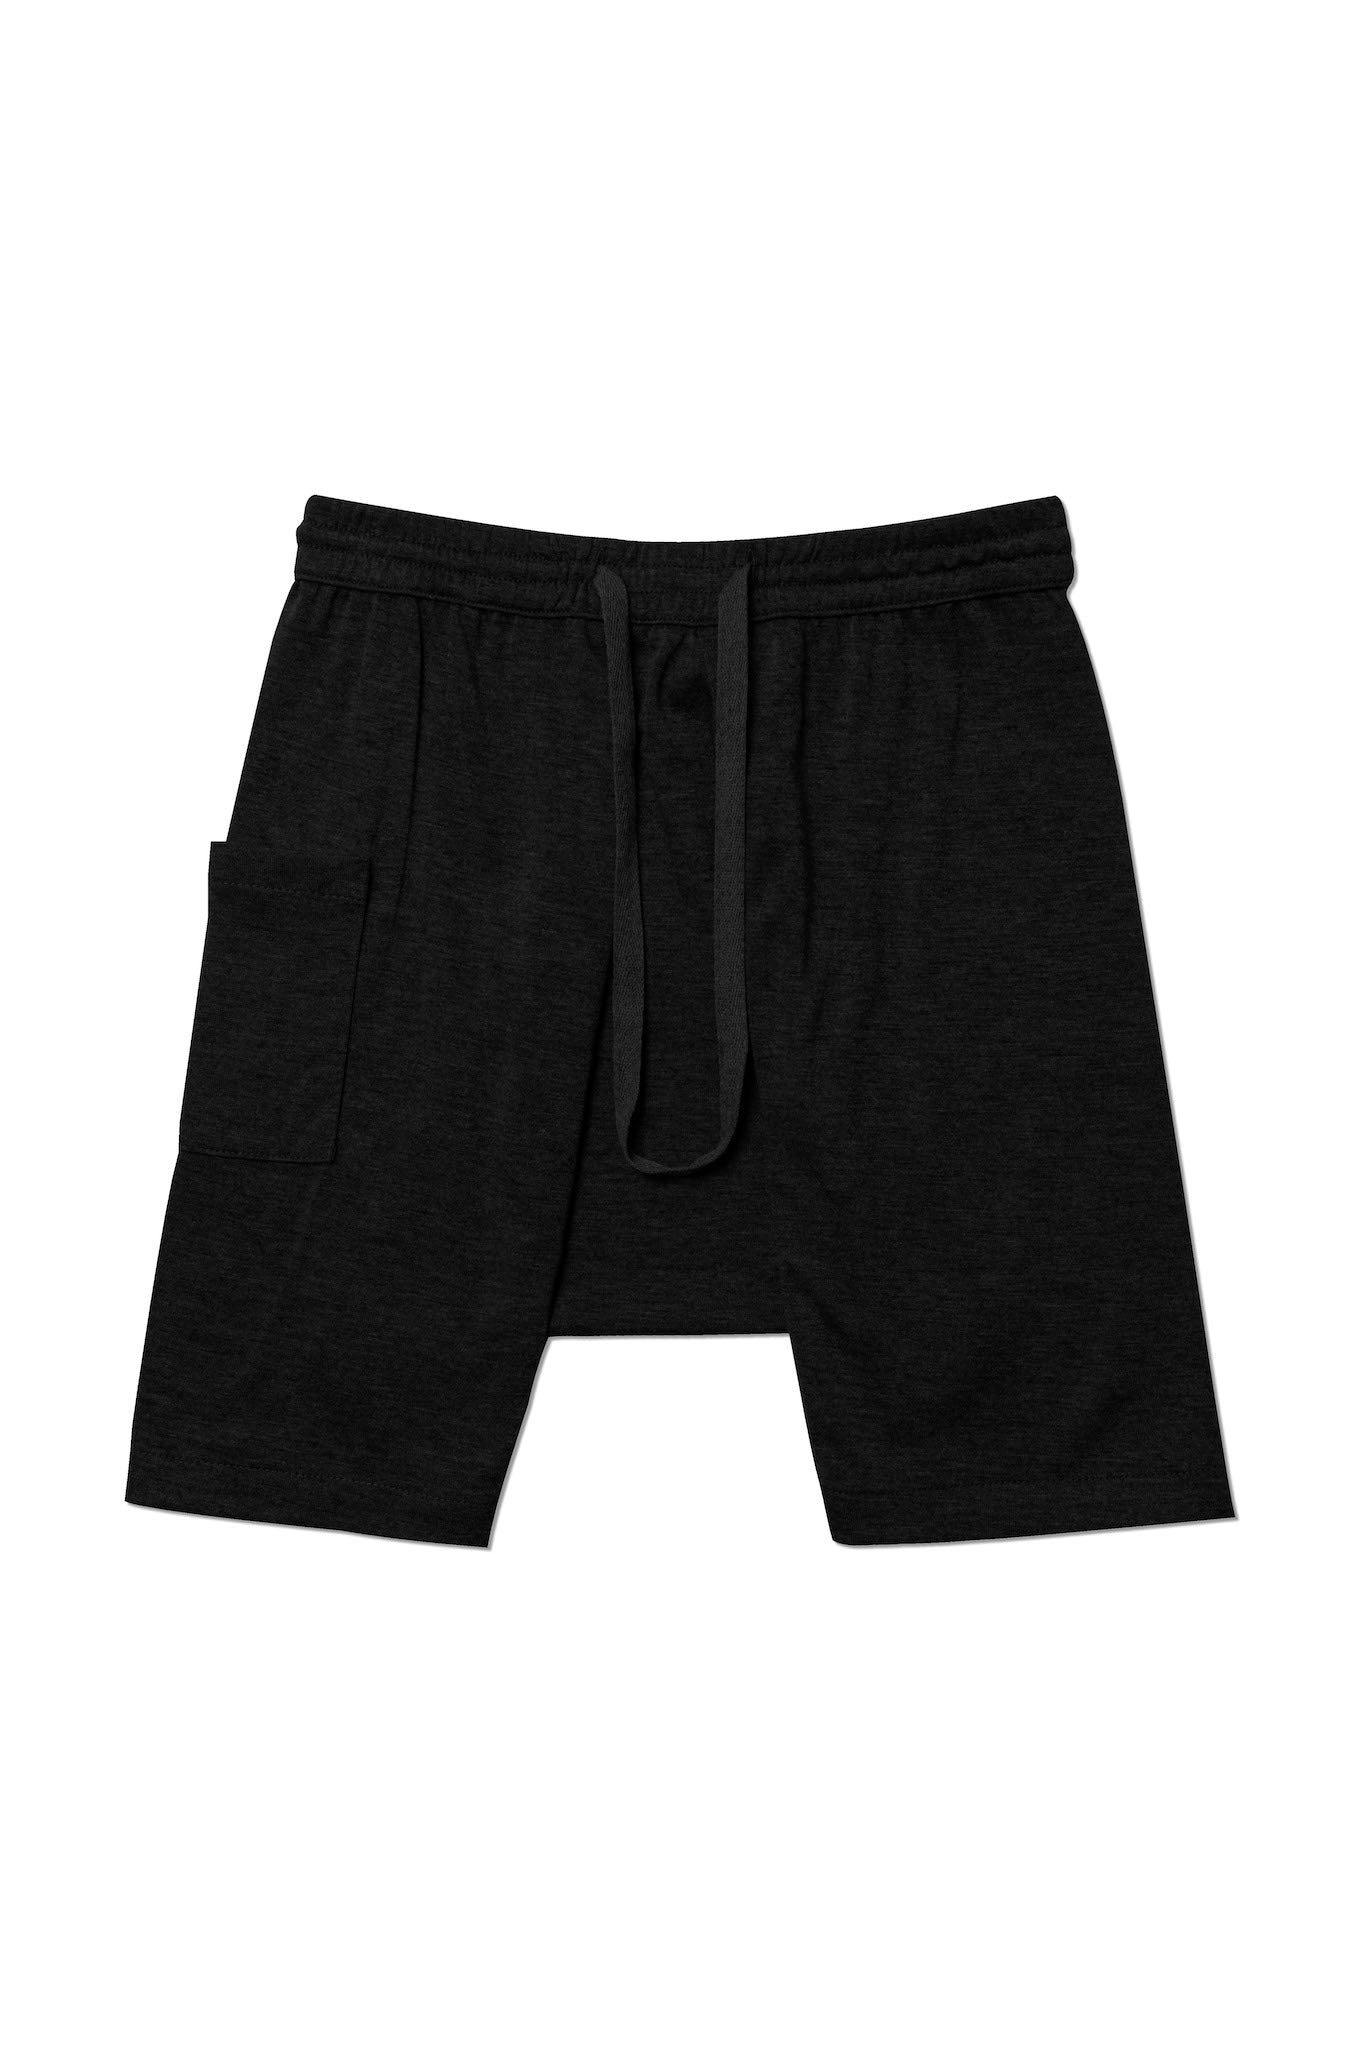 Brody Long Shorts - Spicy Lil Tofu